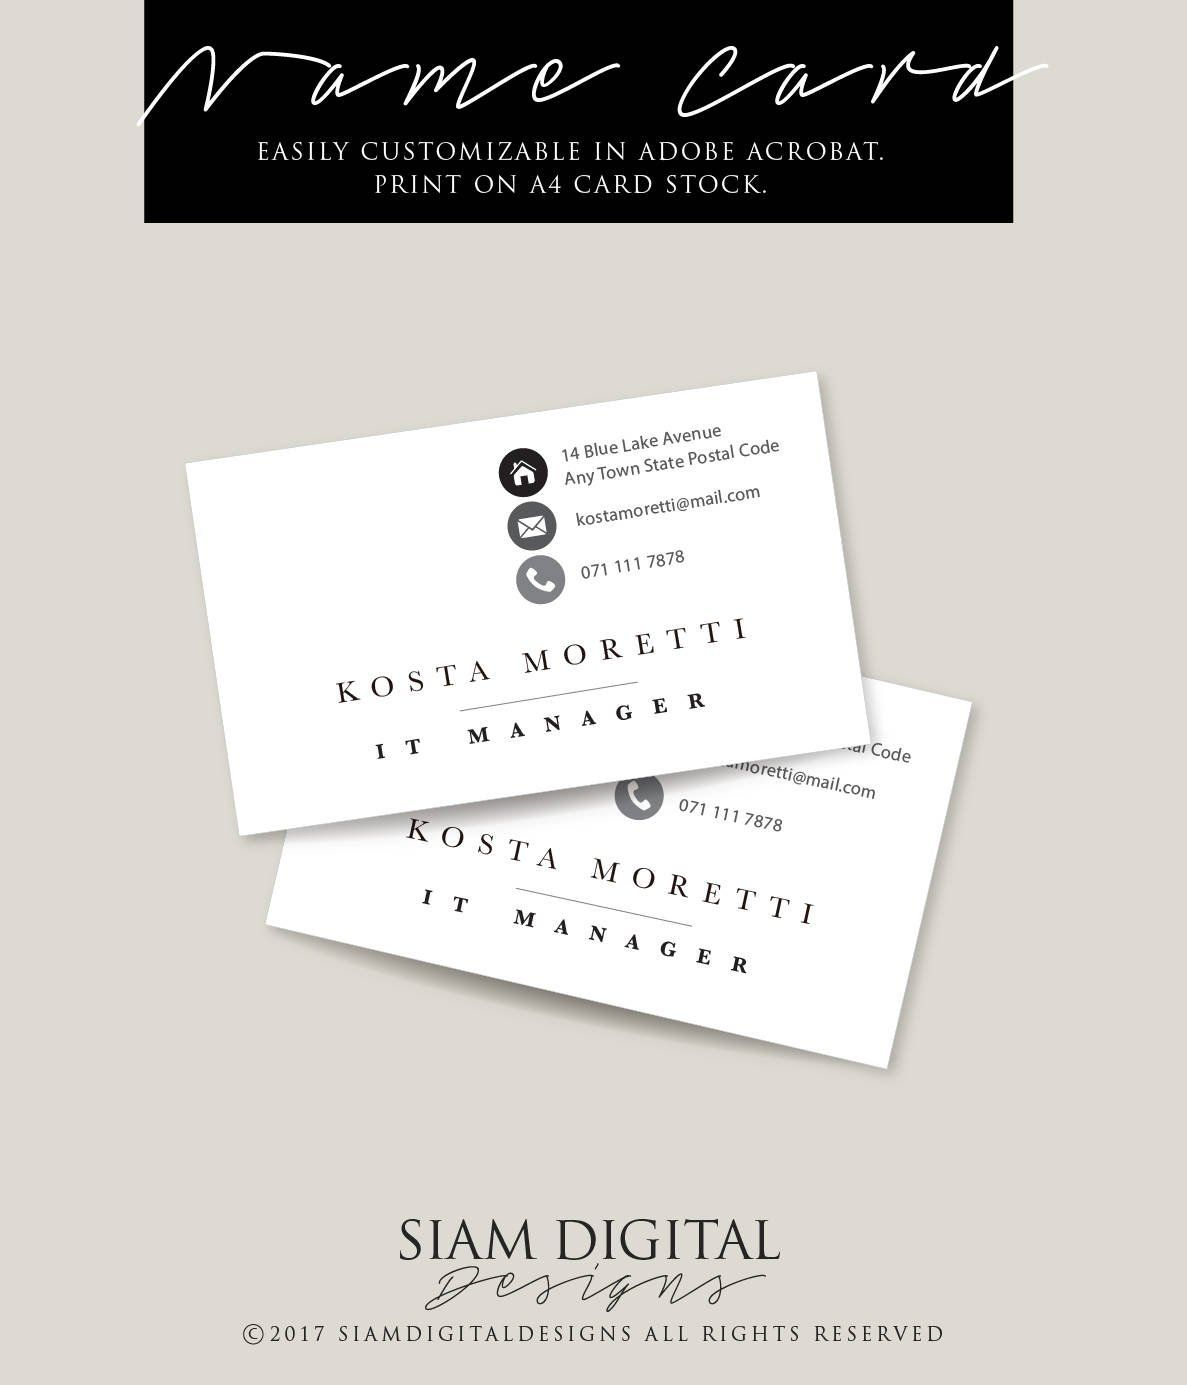 Stylish Business Card Template Edit With Adobe Acrobat Reader